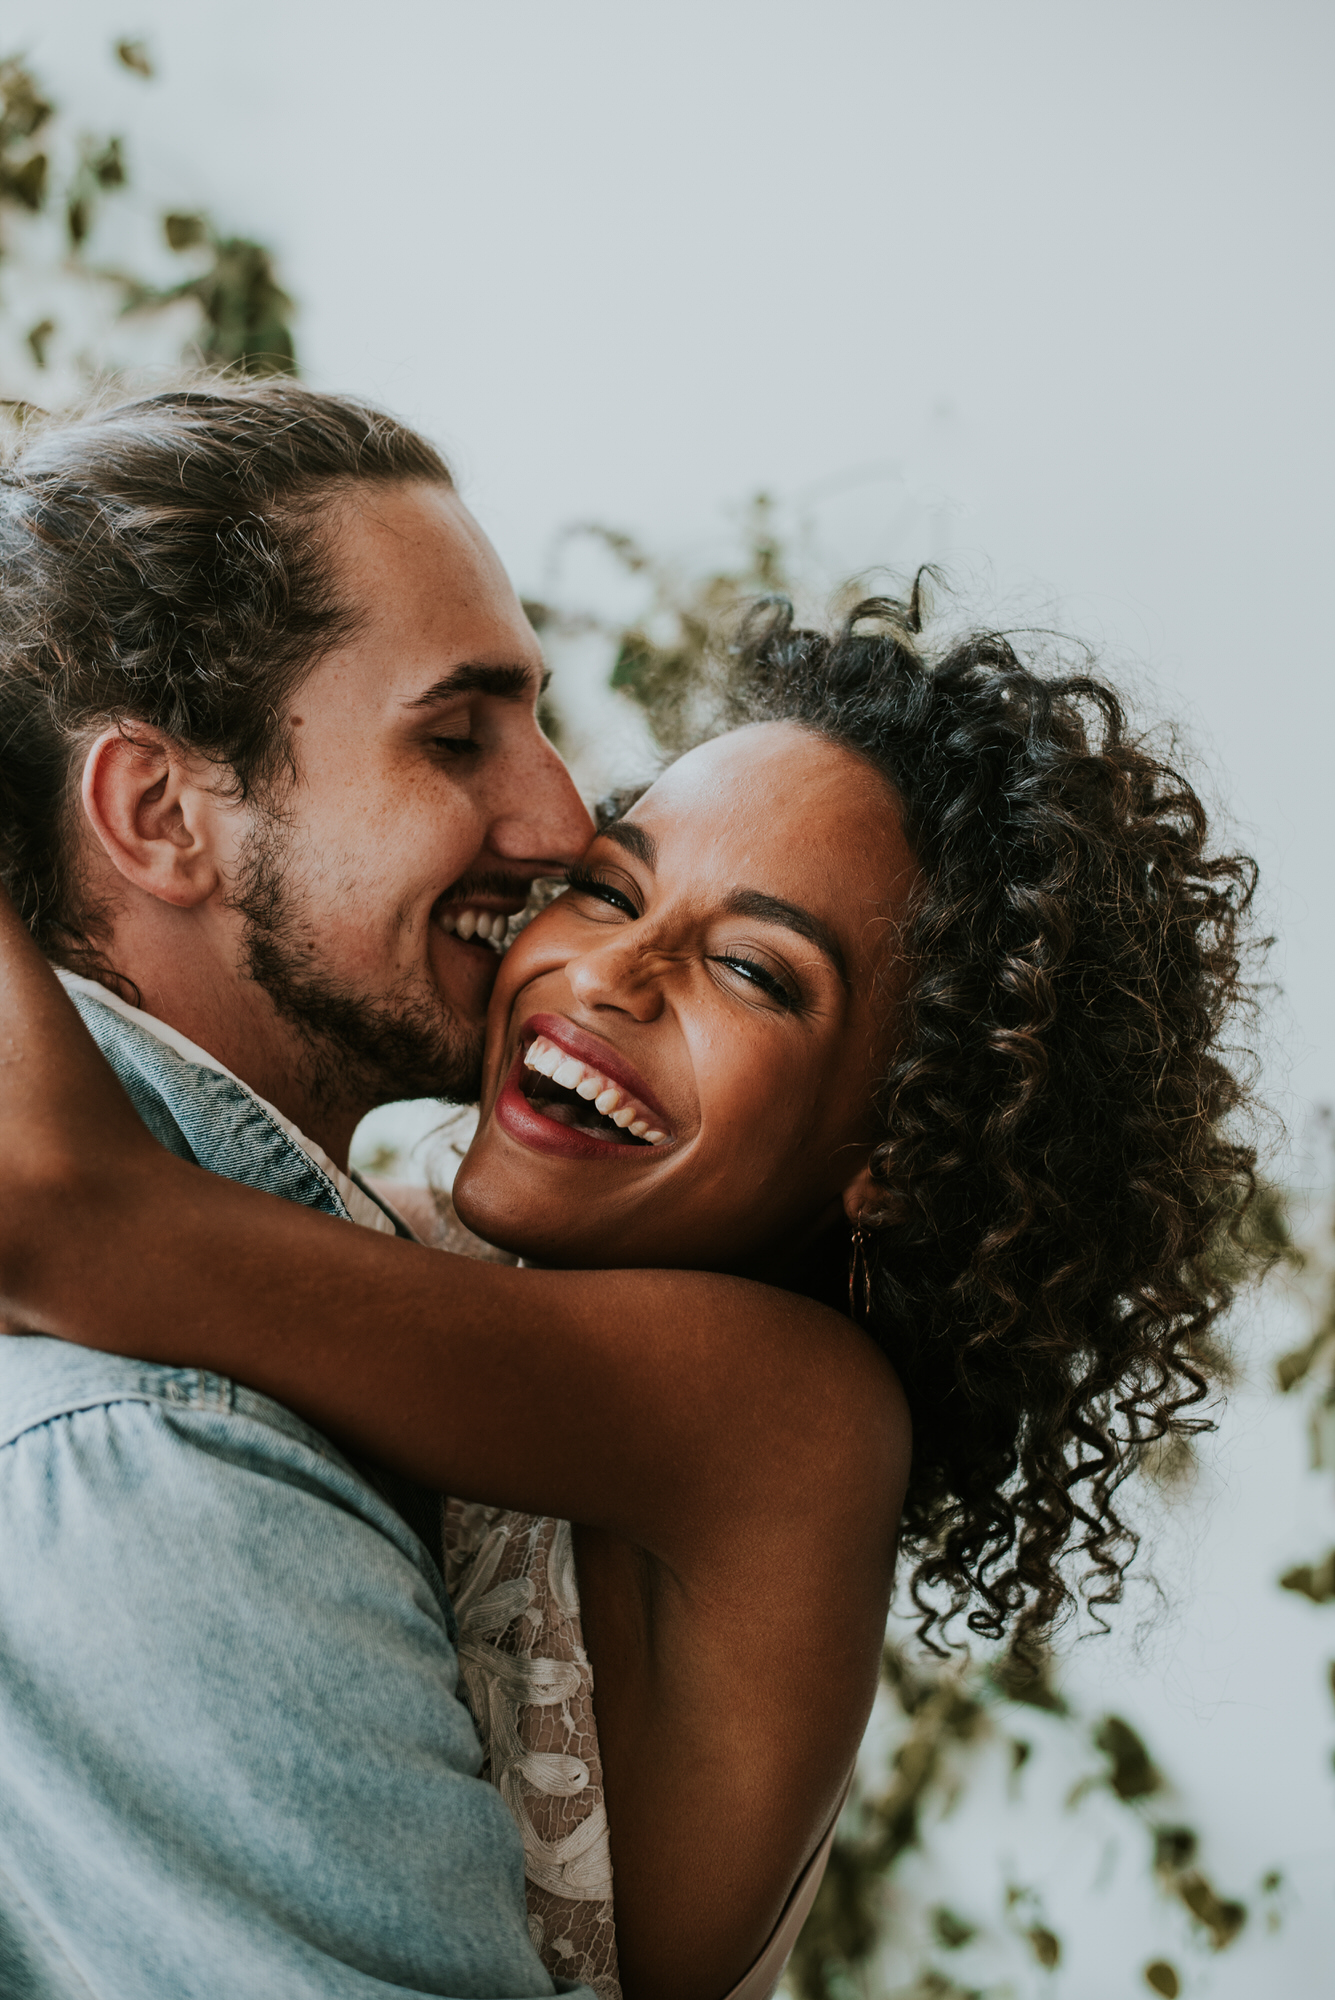 BRIDALS - Get dressed in your wedding clothes and take stress-free photos either before or after your wedding. This is a fun way to get lots of photos in that gorgeous gown of yours.Starting at $500